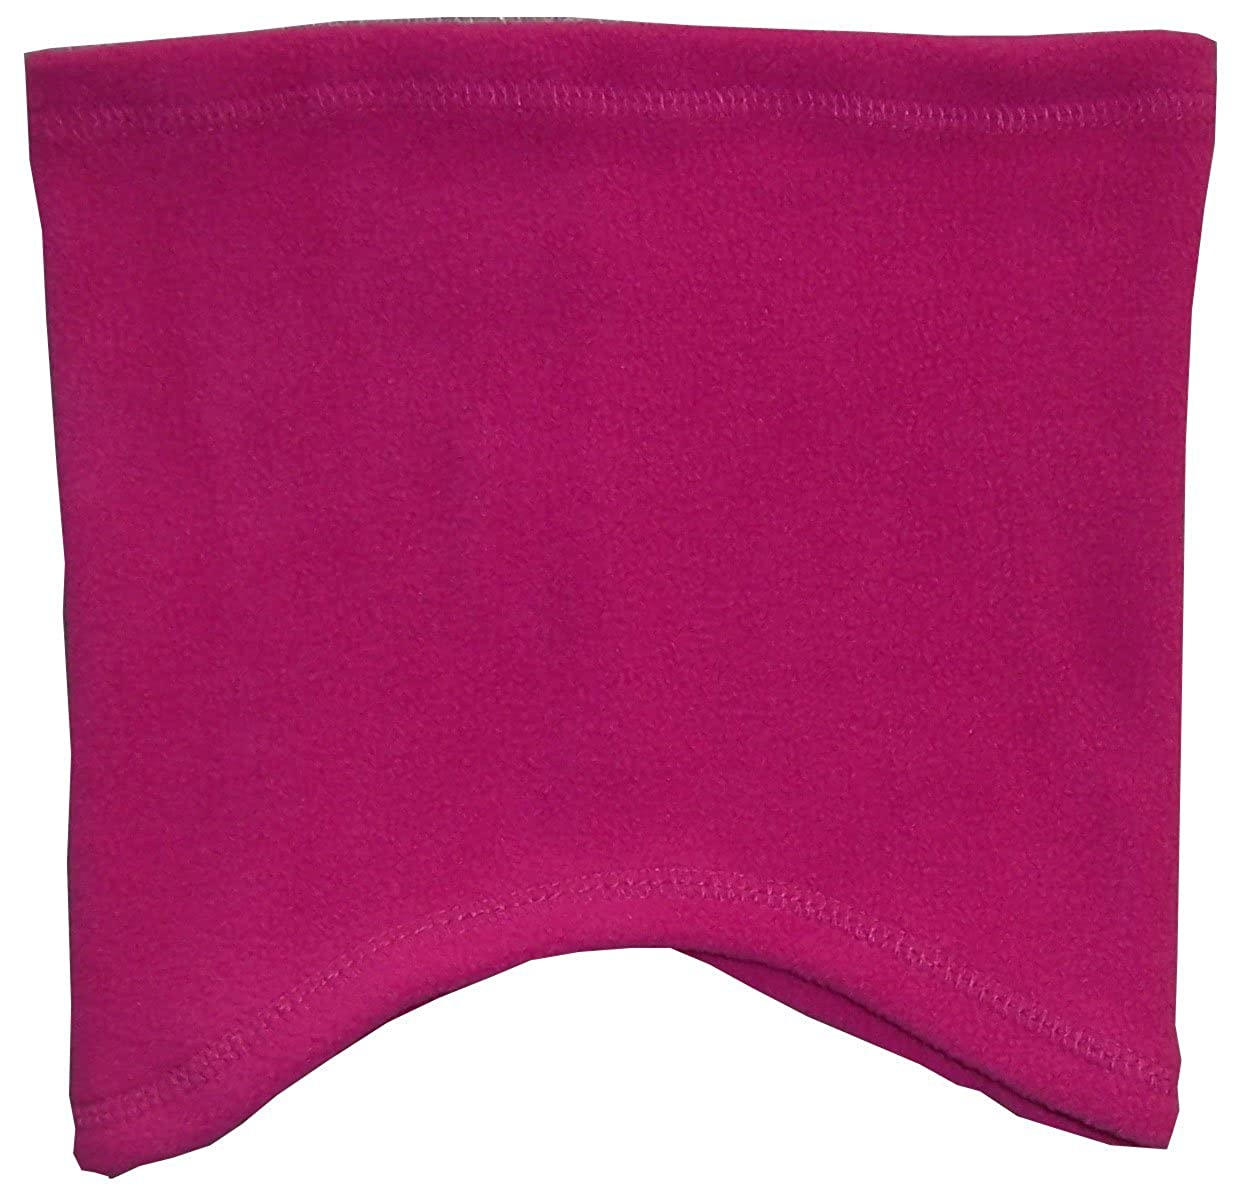 N'Ice Caps Kids Unisex Micro Fleece Neck Gaiter fuchsia) 601-FY